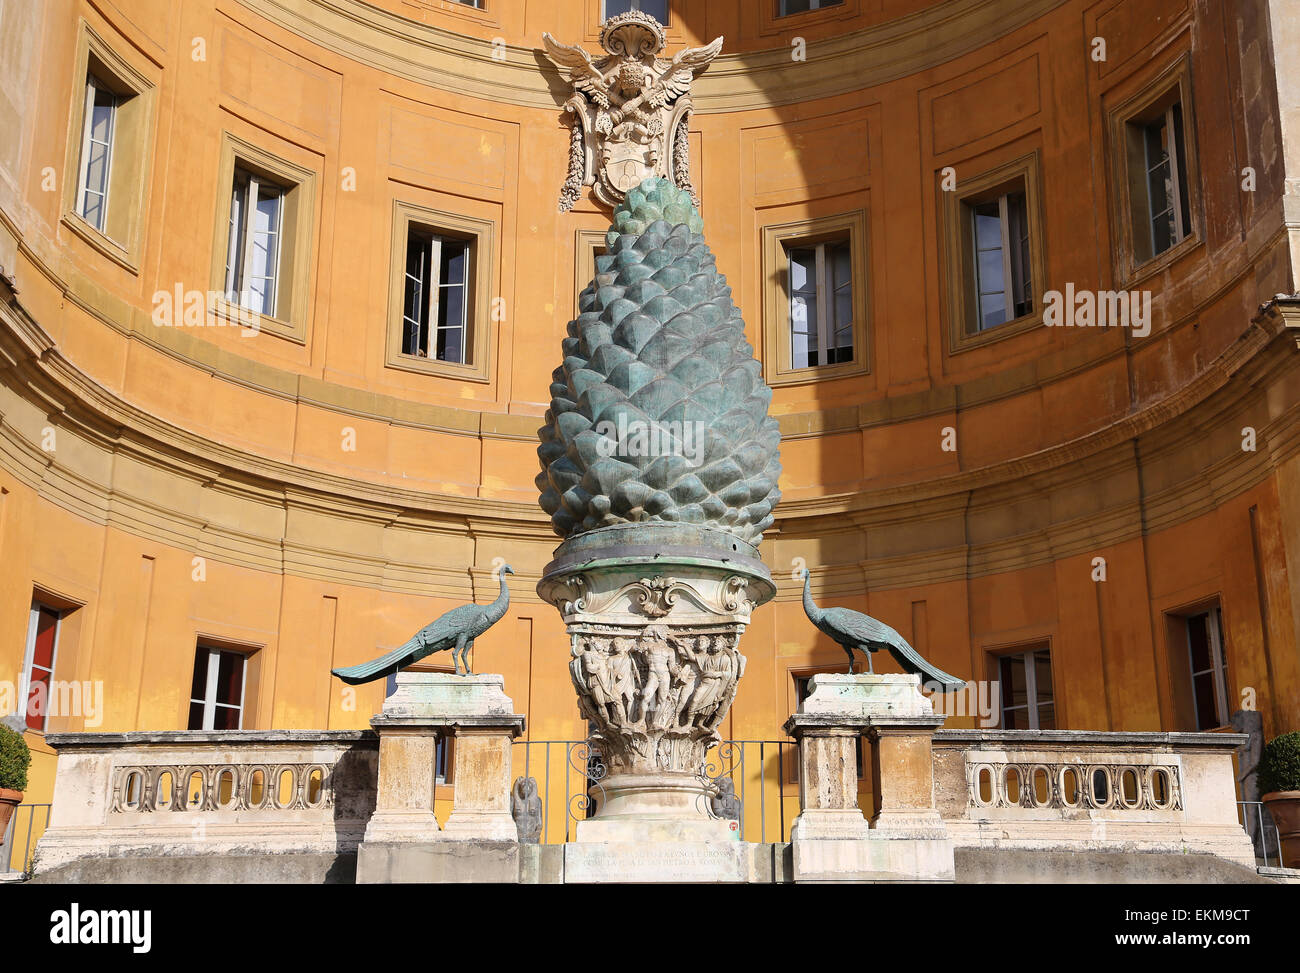 Vatican city. Vatican Museums. Pine cone Sculpture pine cone. 1st or 2nd C. by Publius Cicius Salvius. Bronze. Courtyard. - Stock Image